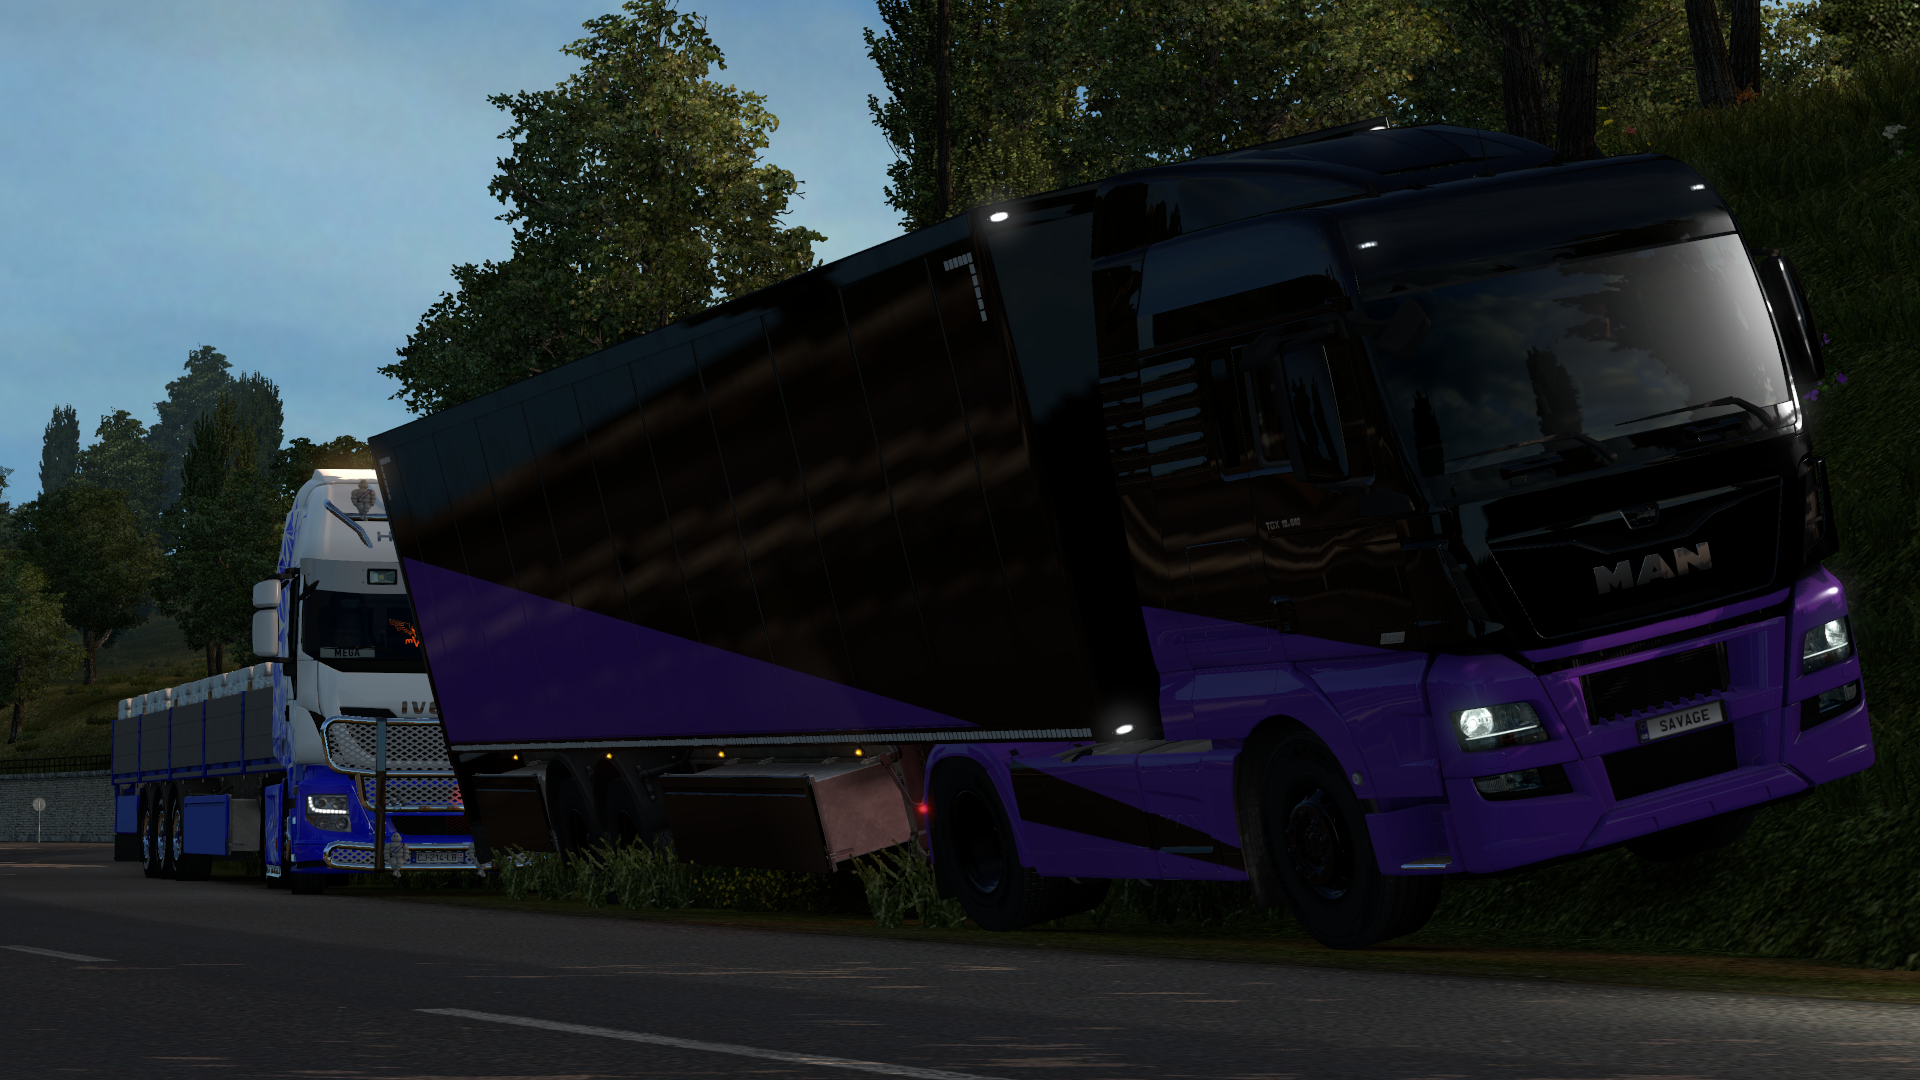 ets2_20190418_192007_00.png